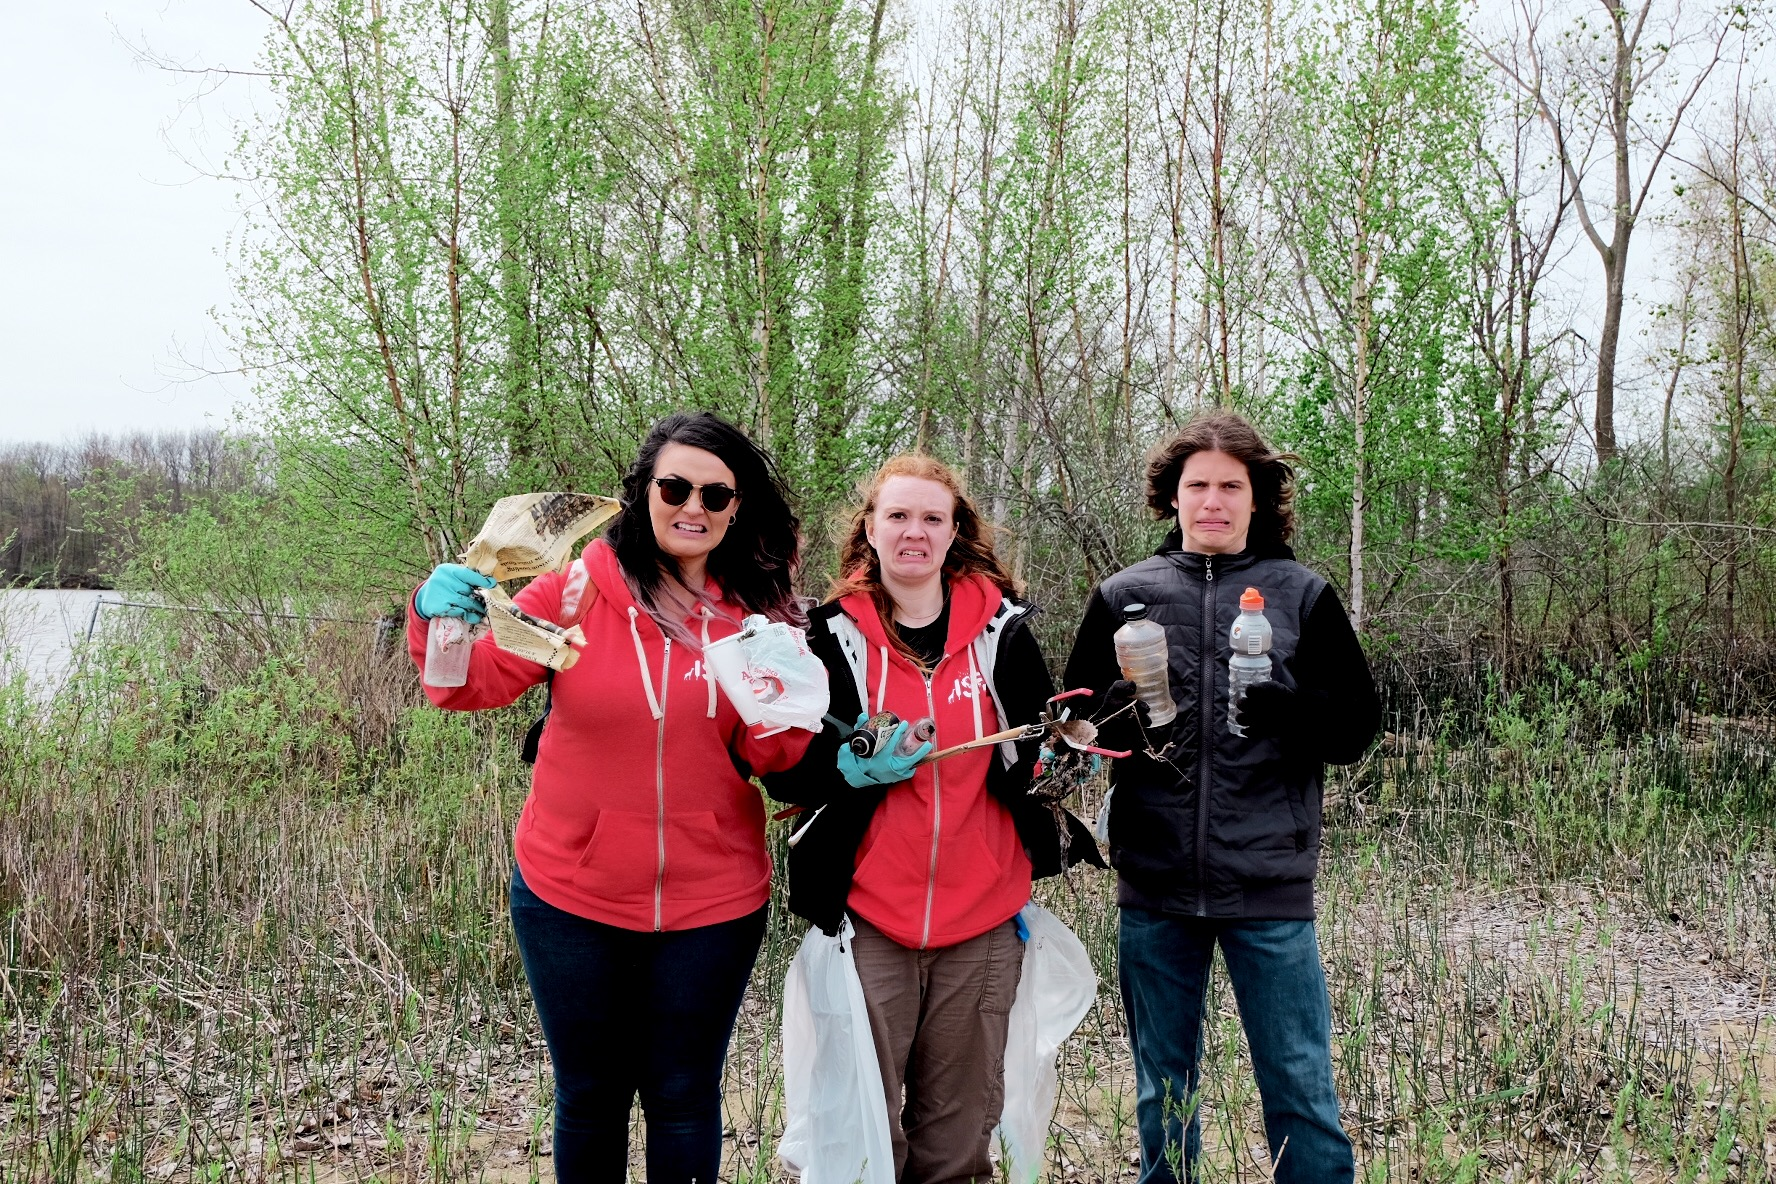 Jules Trace with youth volunteers at Flints First Cleanup